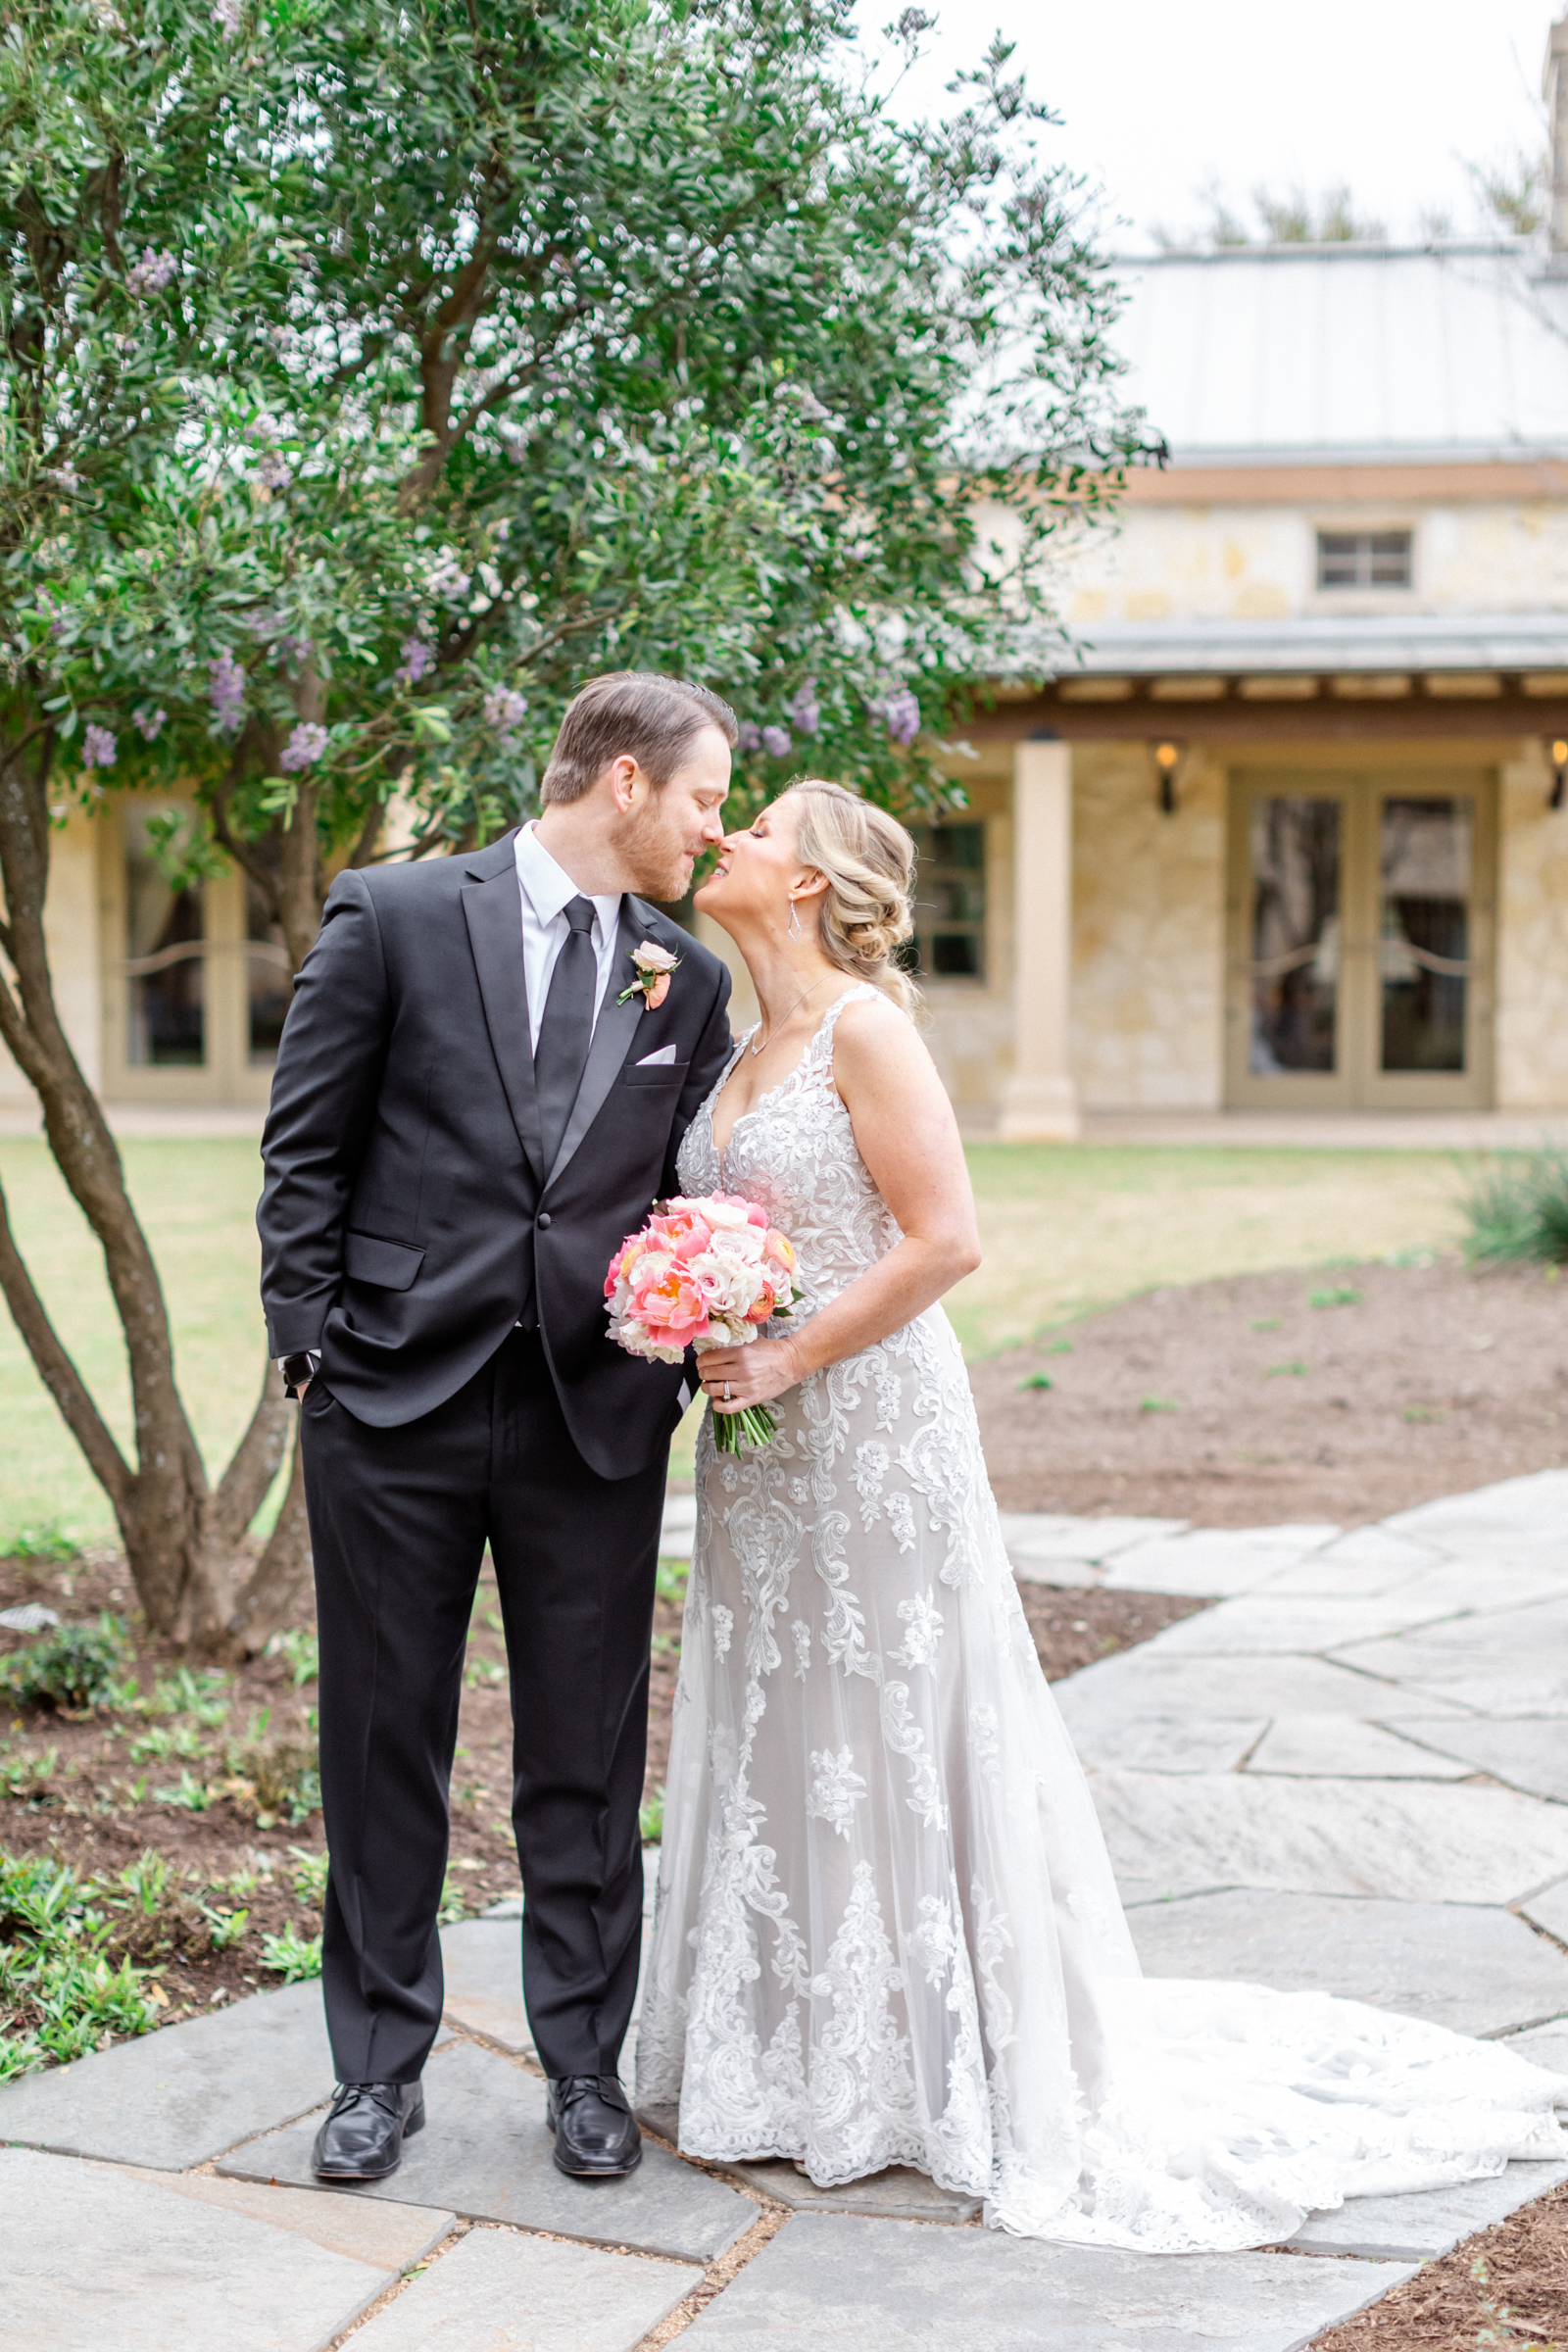 San Antonio Austin Boerne New Braunfels Texas Wedding Engagement Photographer Photography Hill Country Texas JW Marriott Sunday House Wedding Spring Wedding Coral Pink Intimate Wedding San Antonio Austin Texas photographer 48